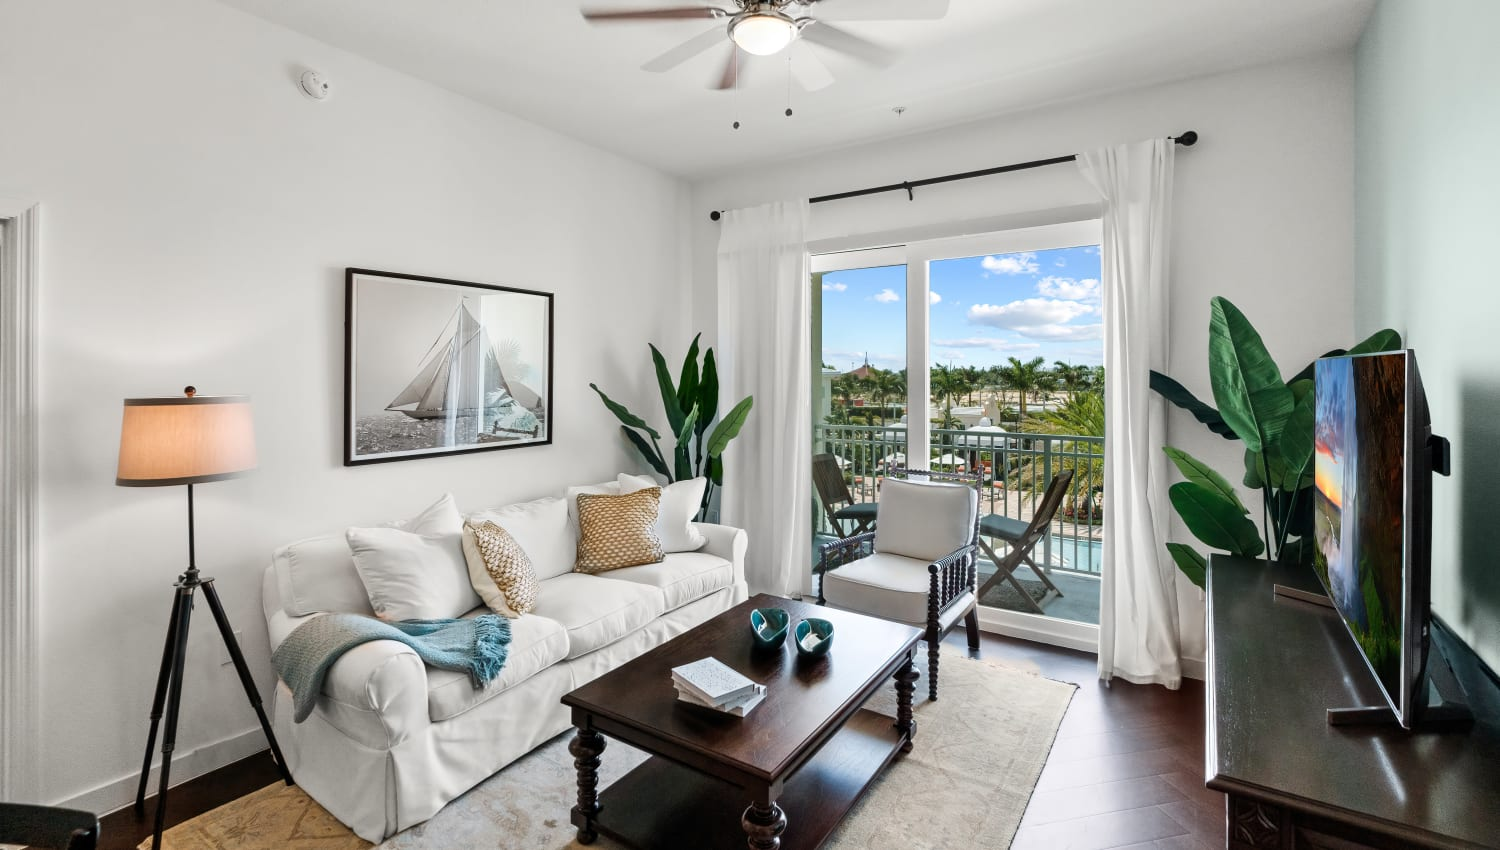 Well decorated living room with great views and a private balcony at Town Lantana in Lantana, Florida